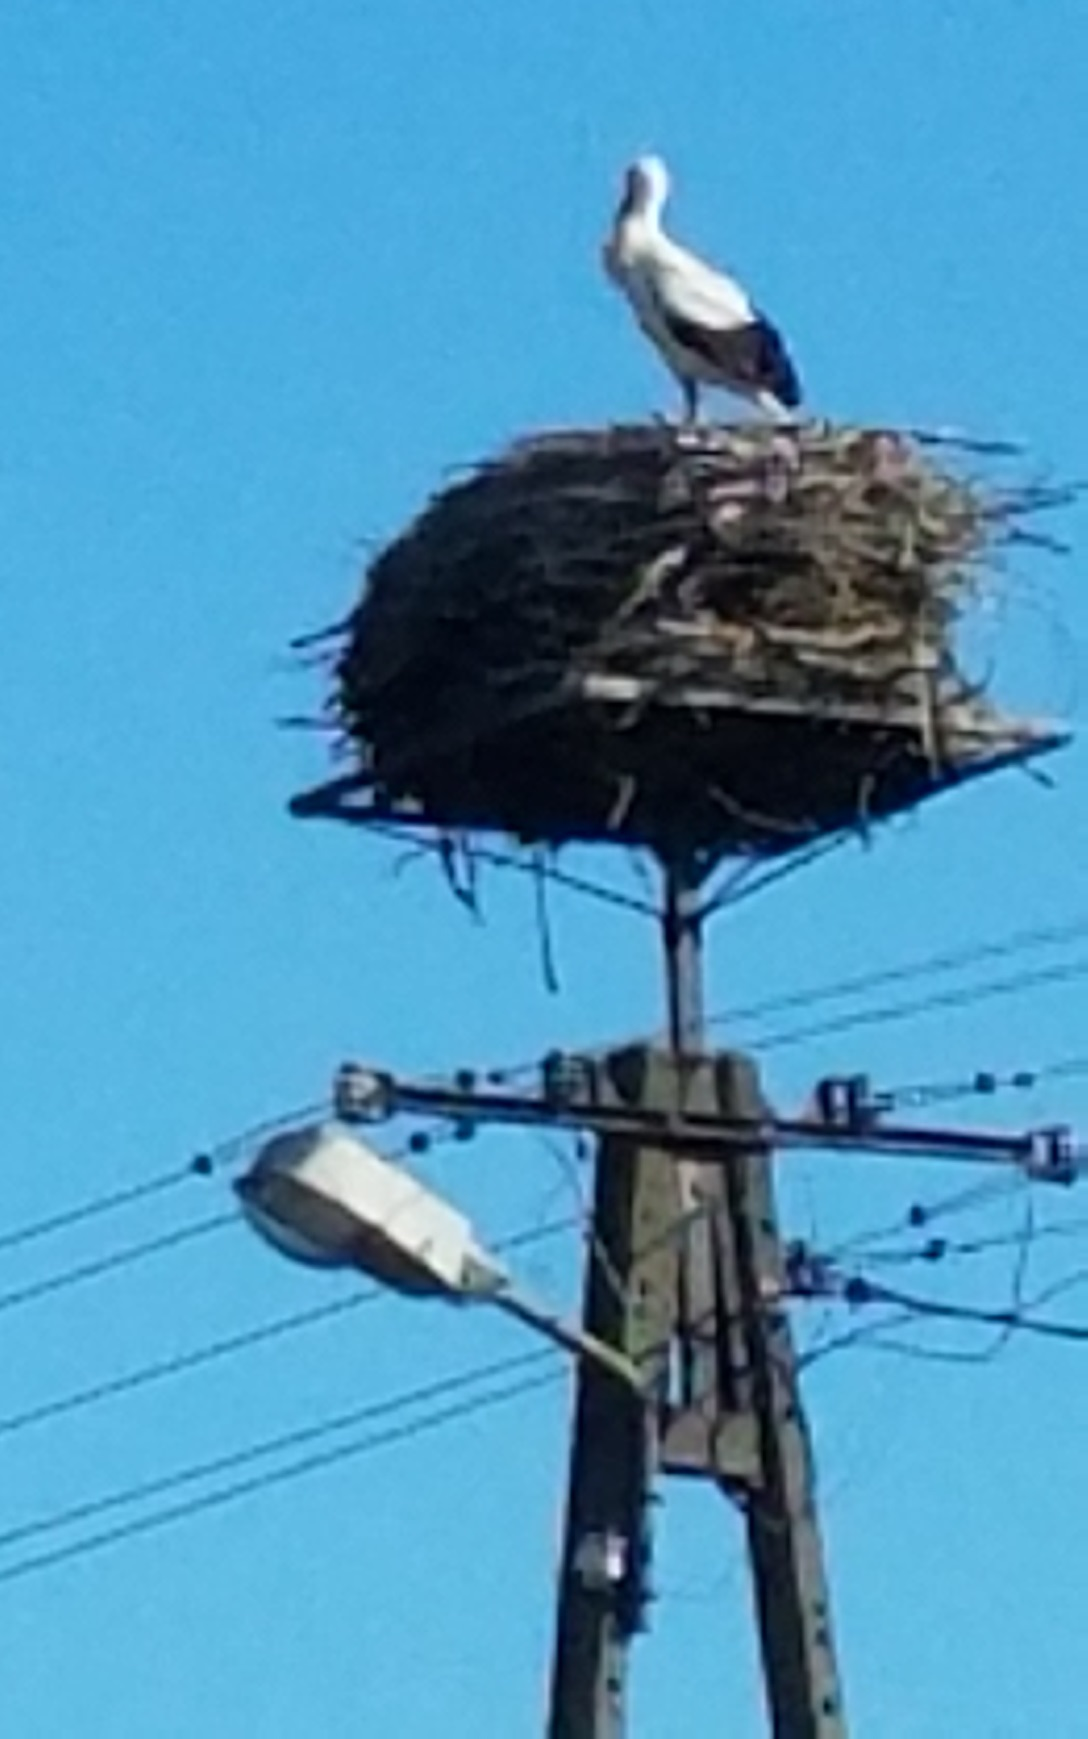 The stork was home!